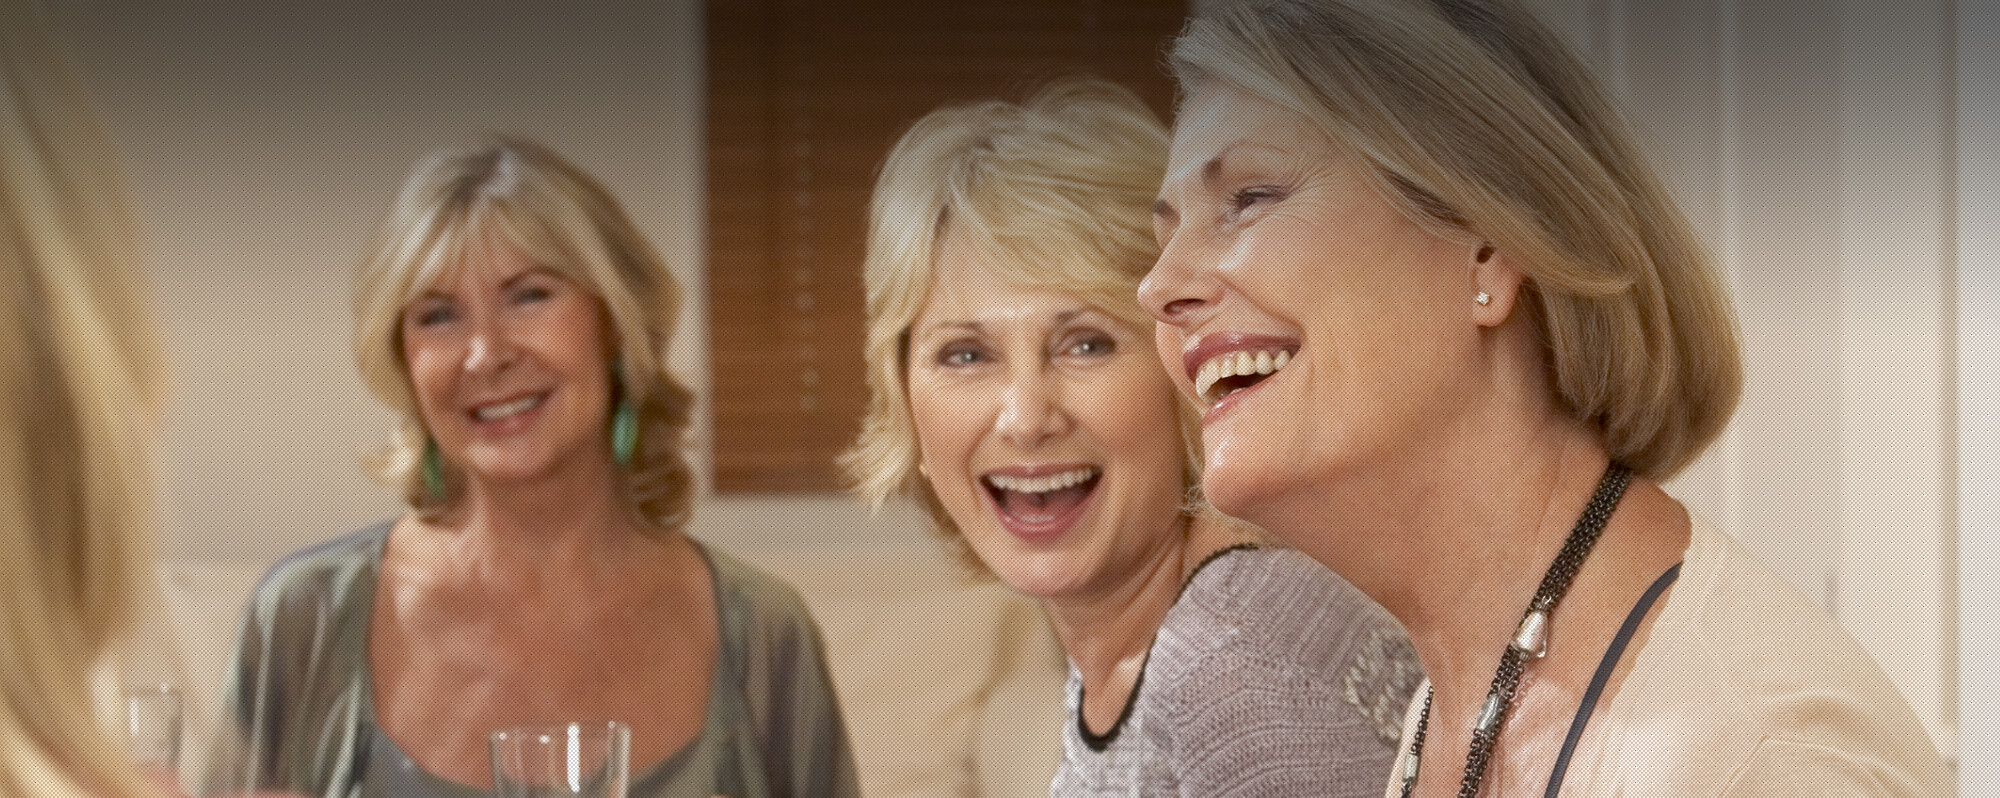 blum senior personals Meet senior singles in blum, texas online & connect in the chat rooms dhu is a 100% free dating site for senior dating in blum.